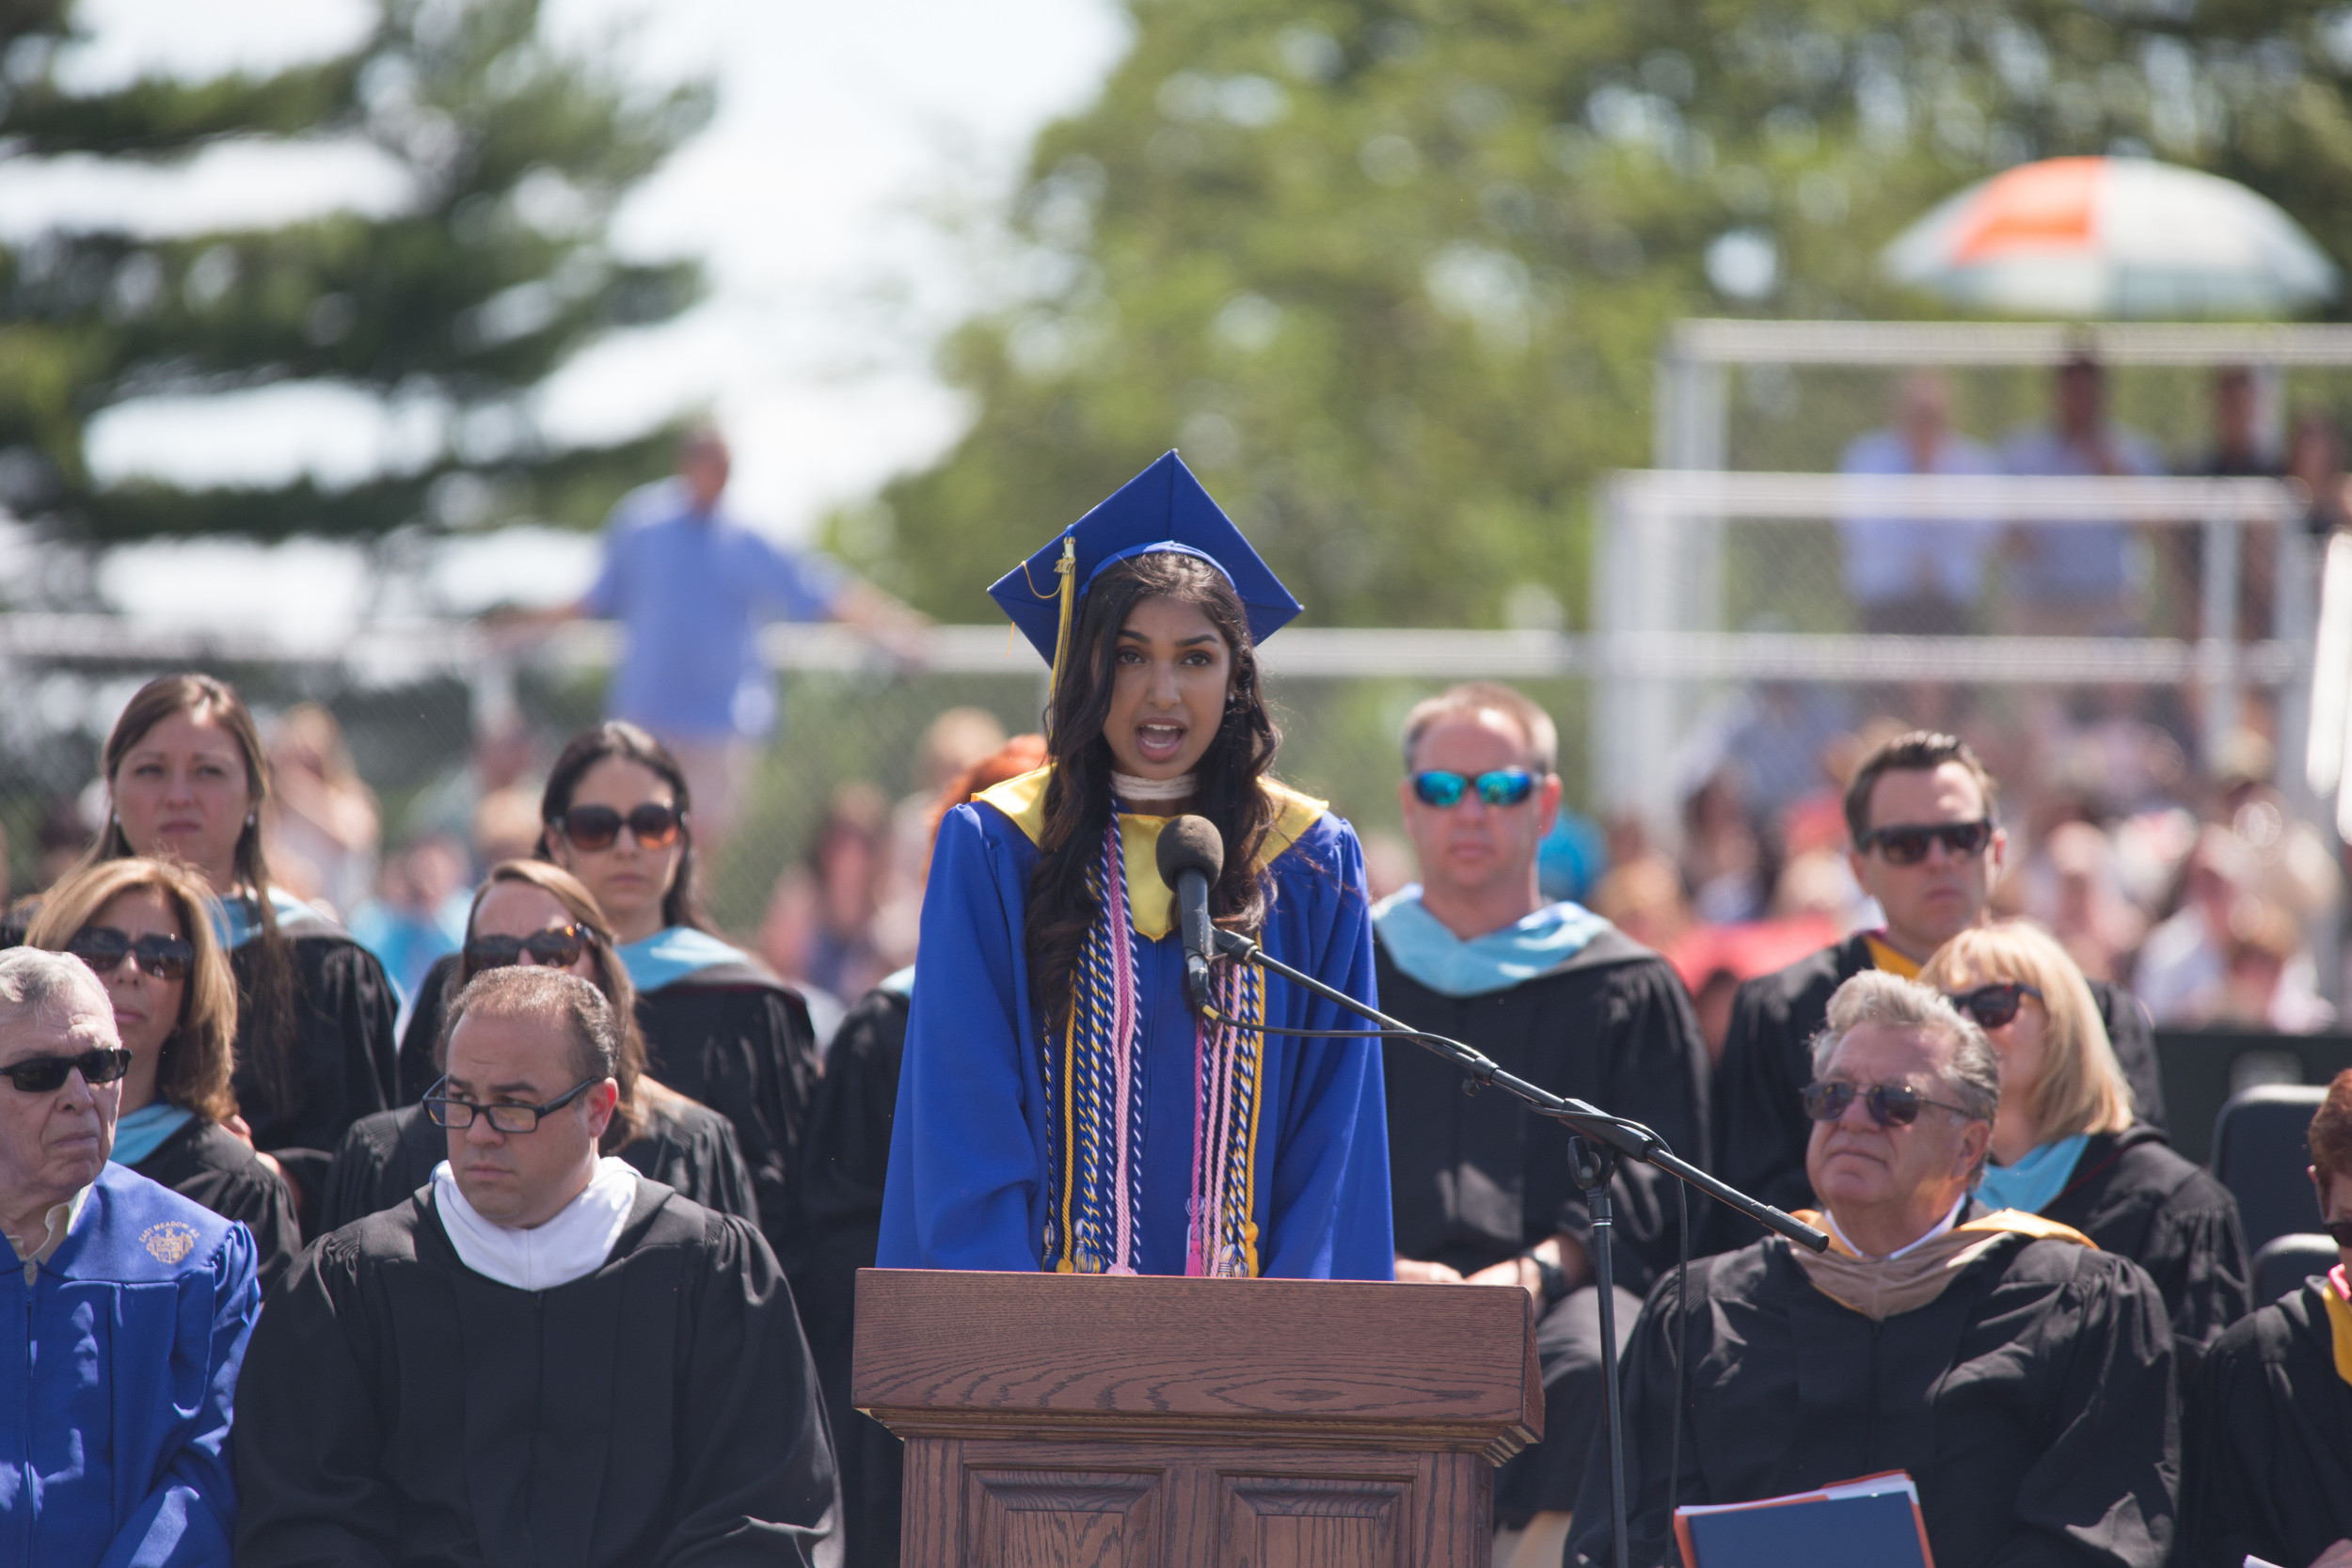 Salutatorian Sonali Persaud reflected on her years at East Meadow High School.